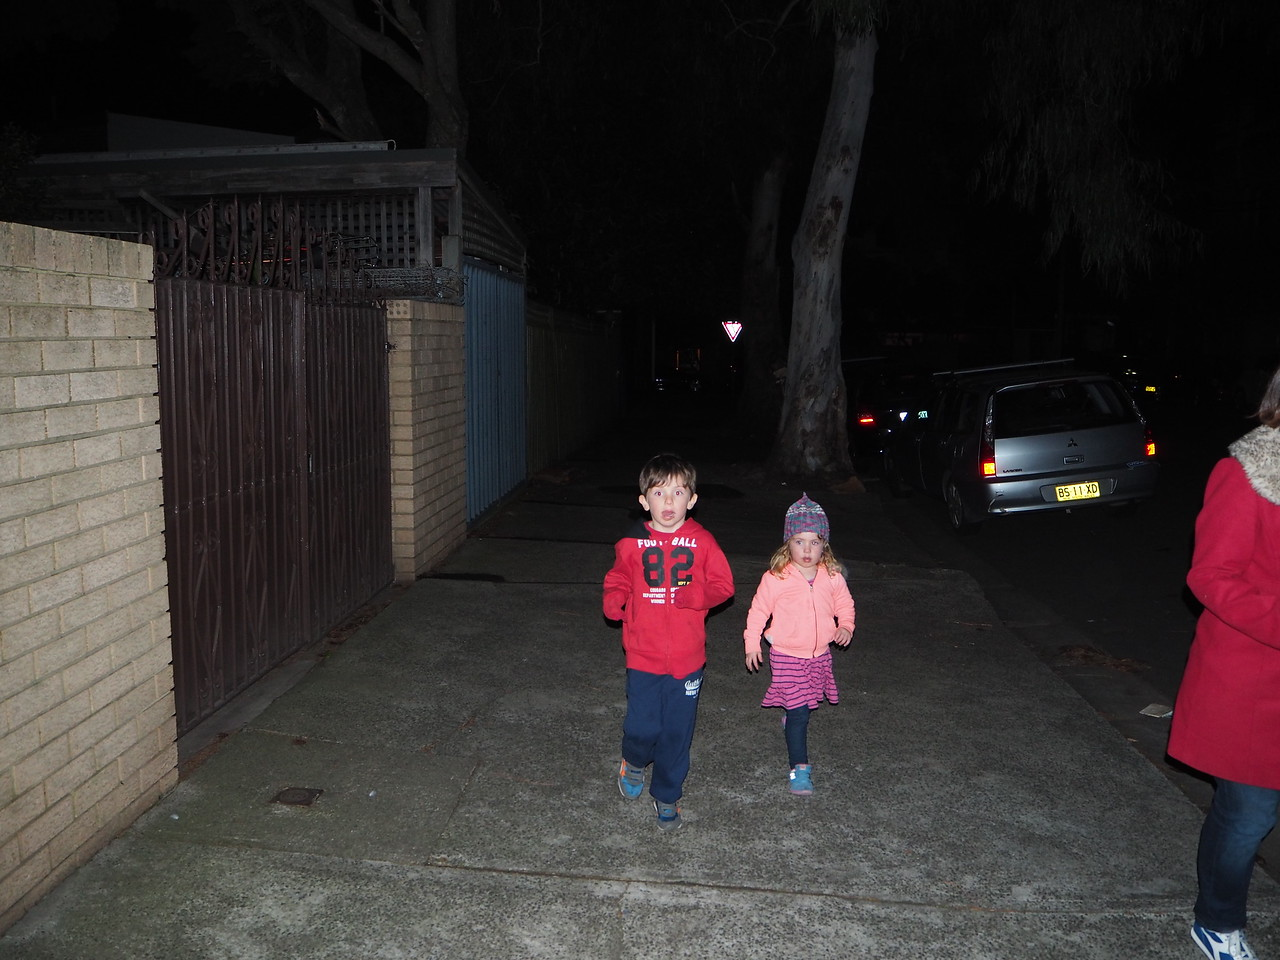 Kids walking home on a cold night